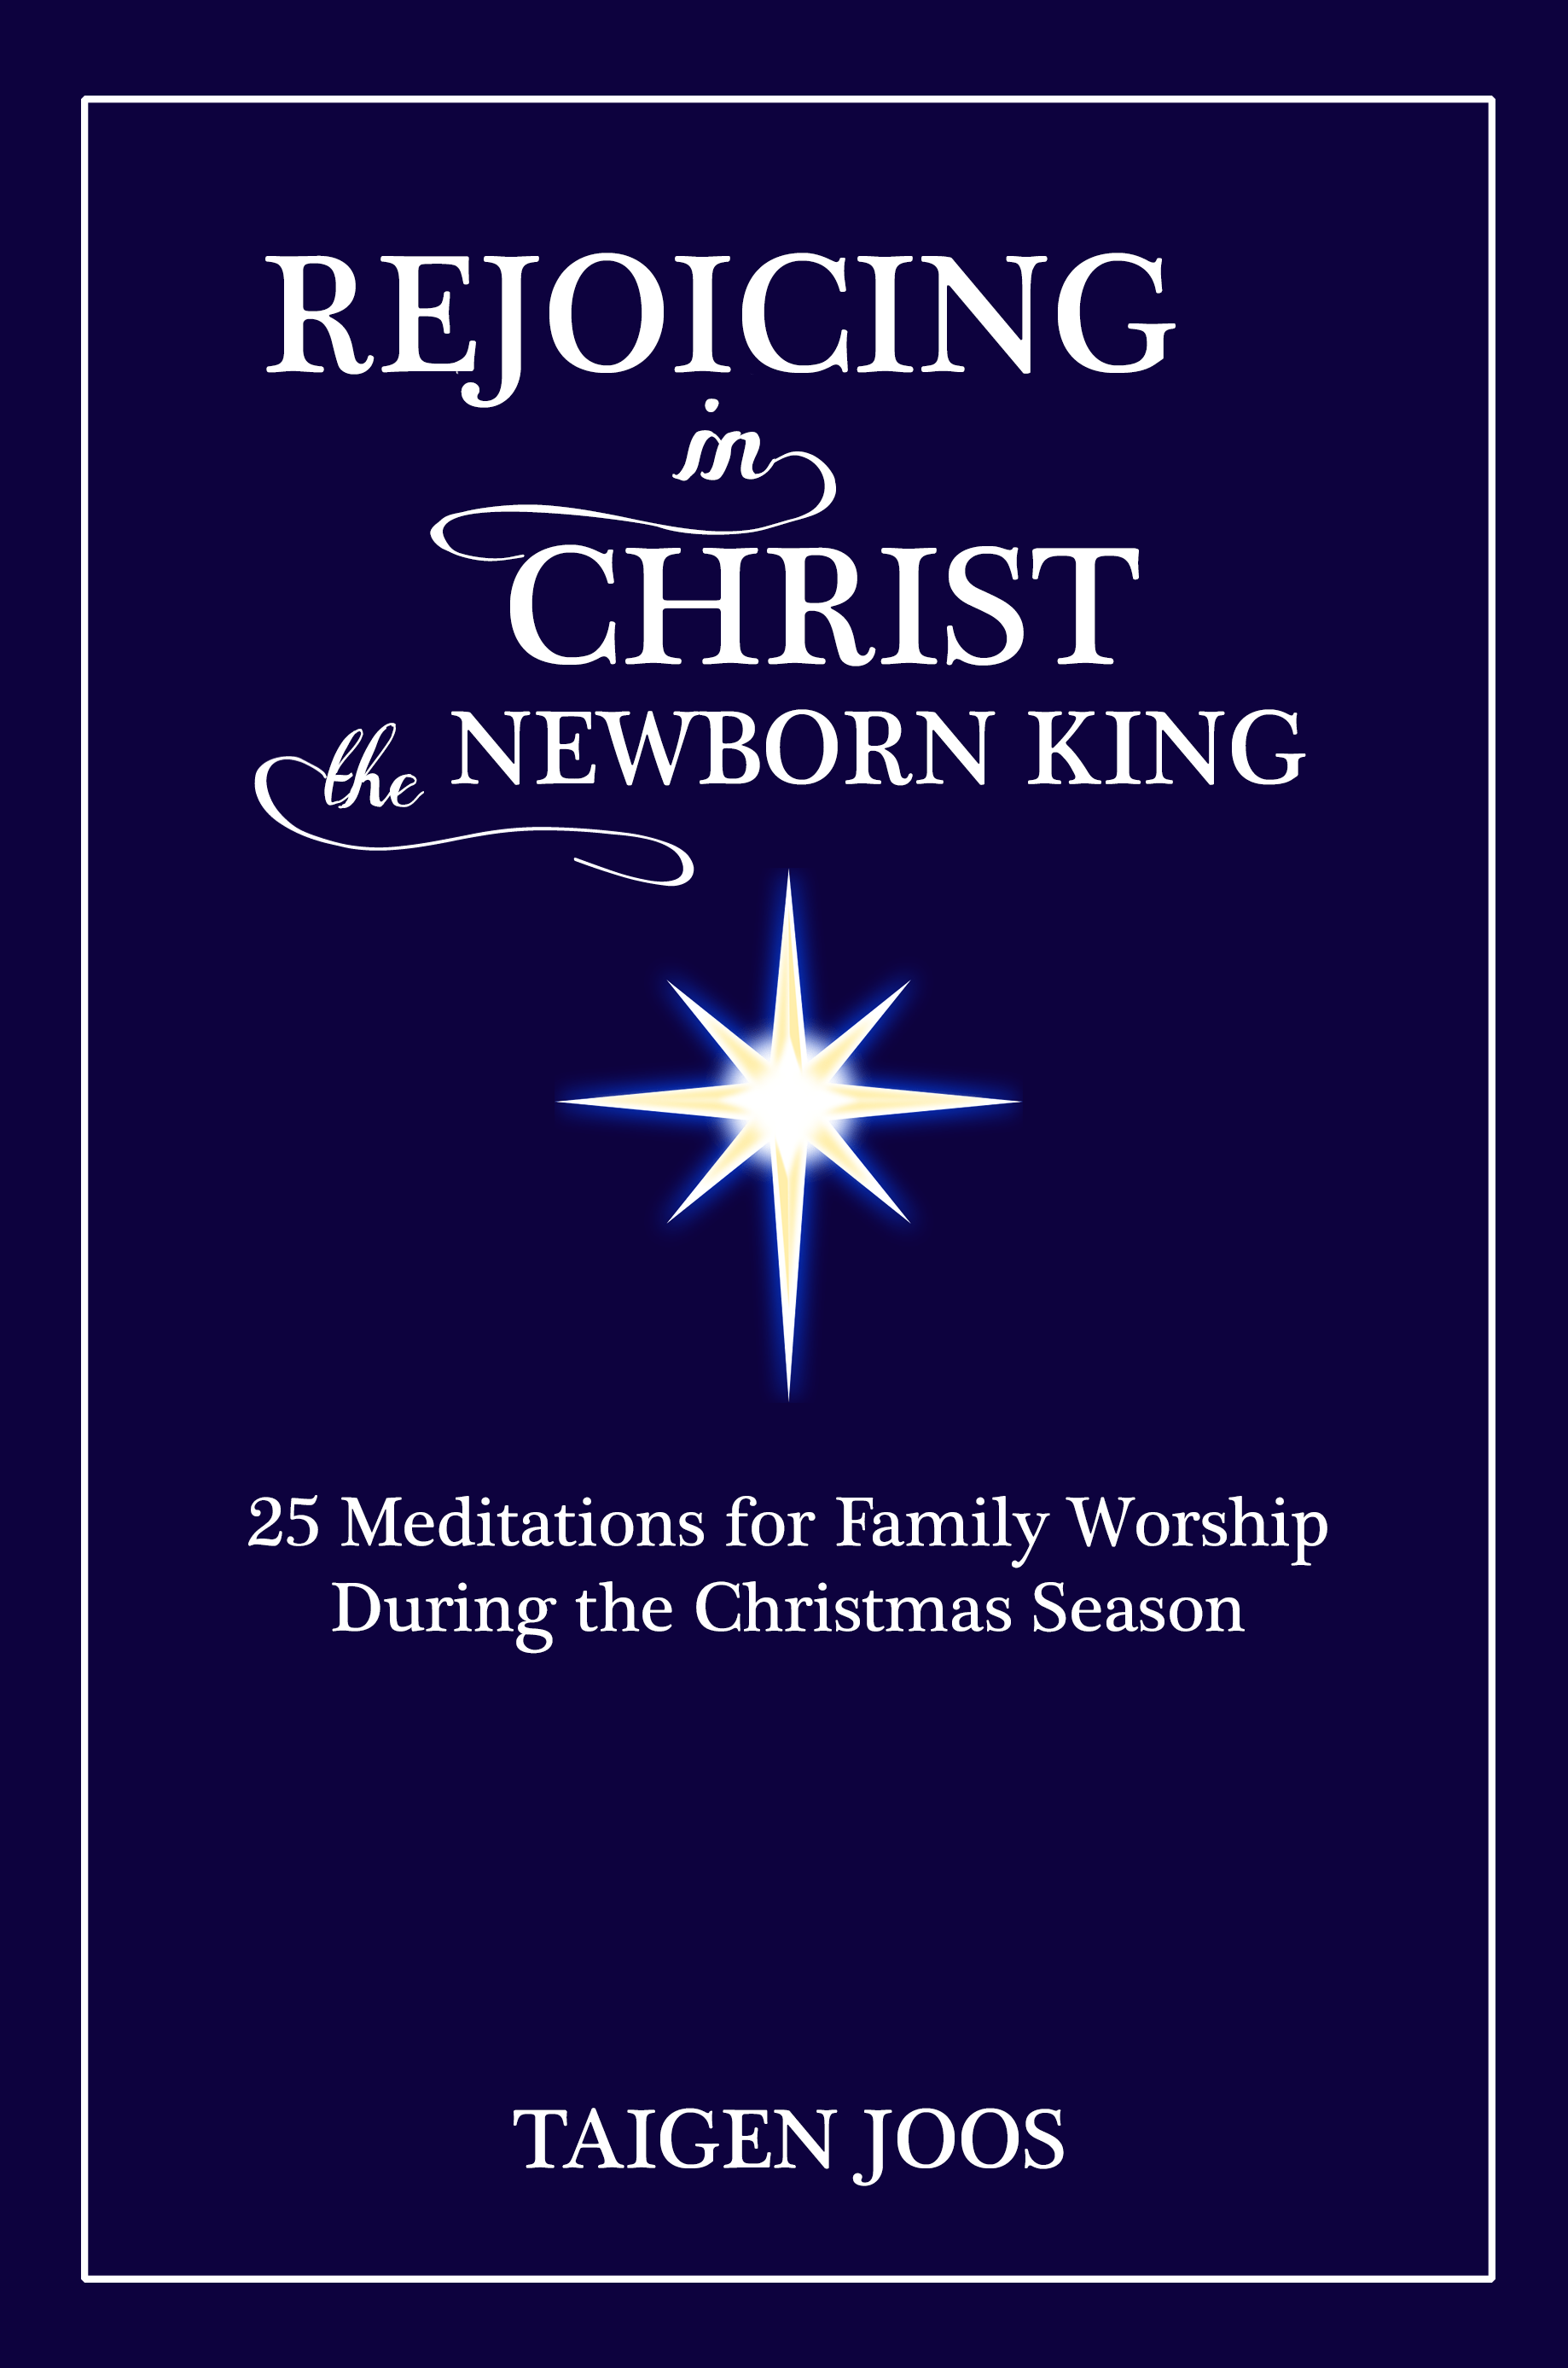 Download a free sample of Taigen Joos's new Christmas devotional!